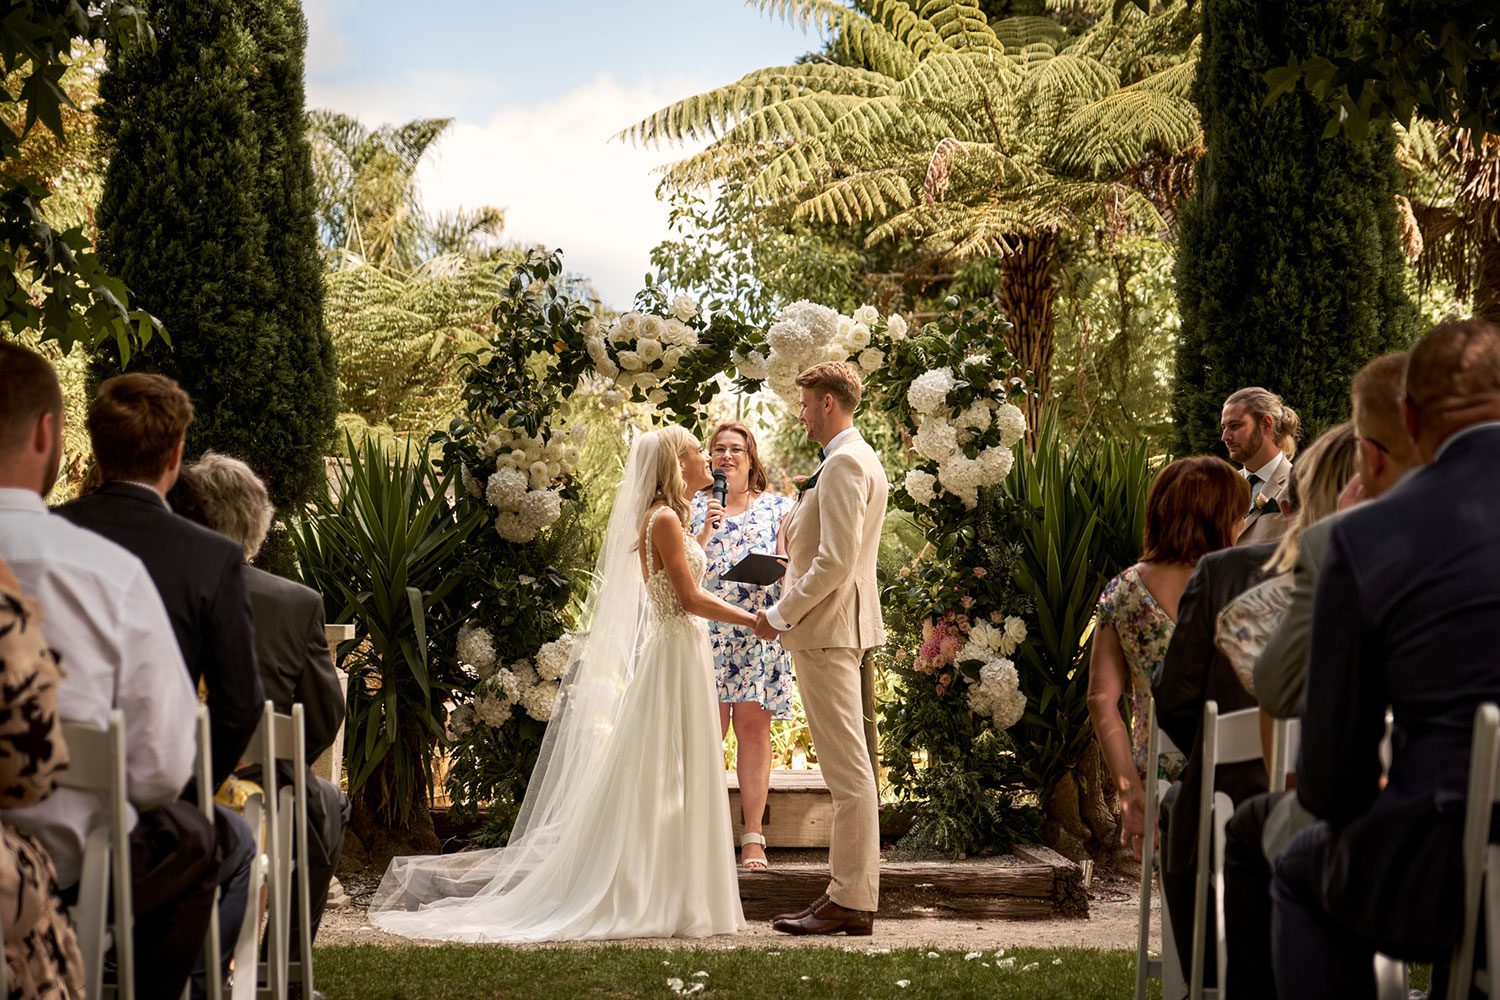 Bride wearing bespoke gown made of silk chiffon with delicate flower lace bodice by Vinka bridal designer Auckland - at alter saying vows with guests seated